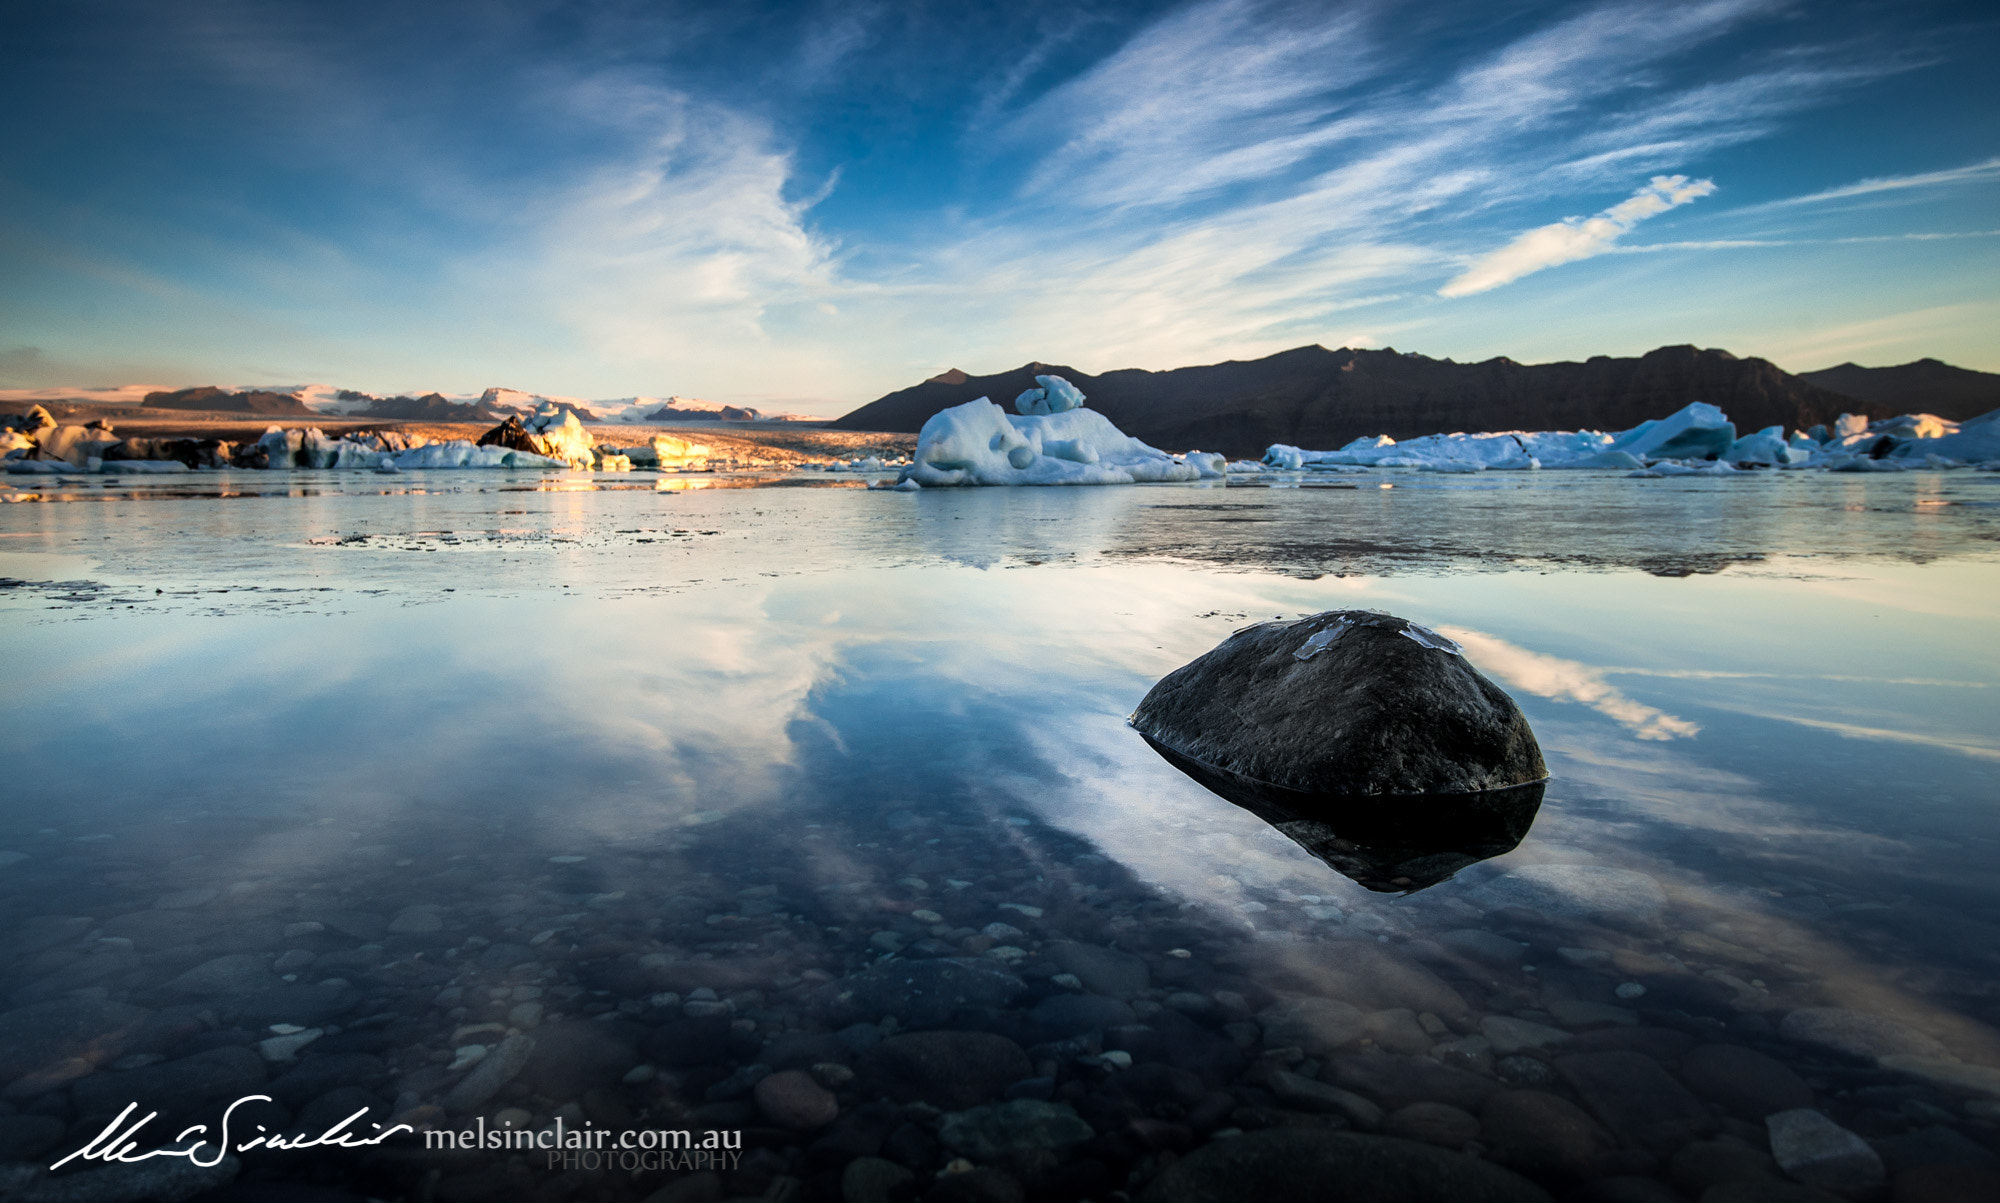 Photograph The Final Frozen Morning by Mel Sinclair on 500px